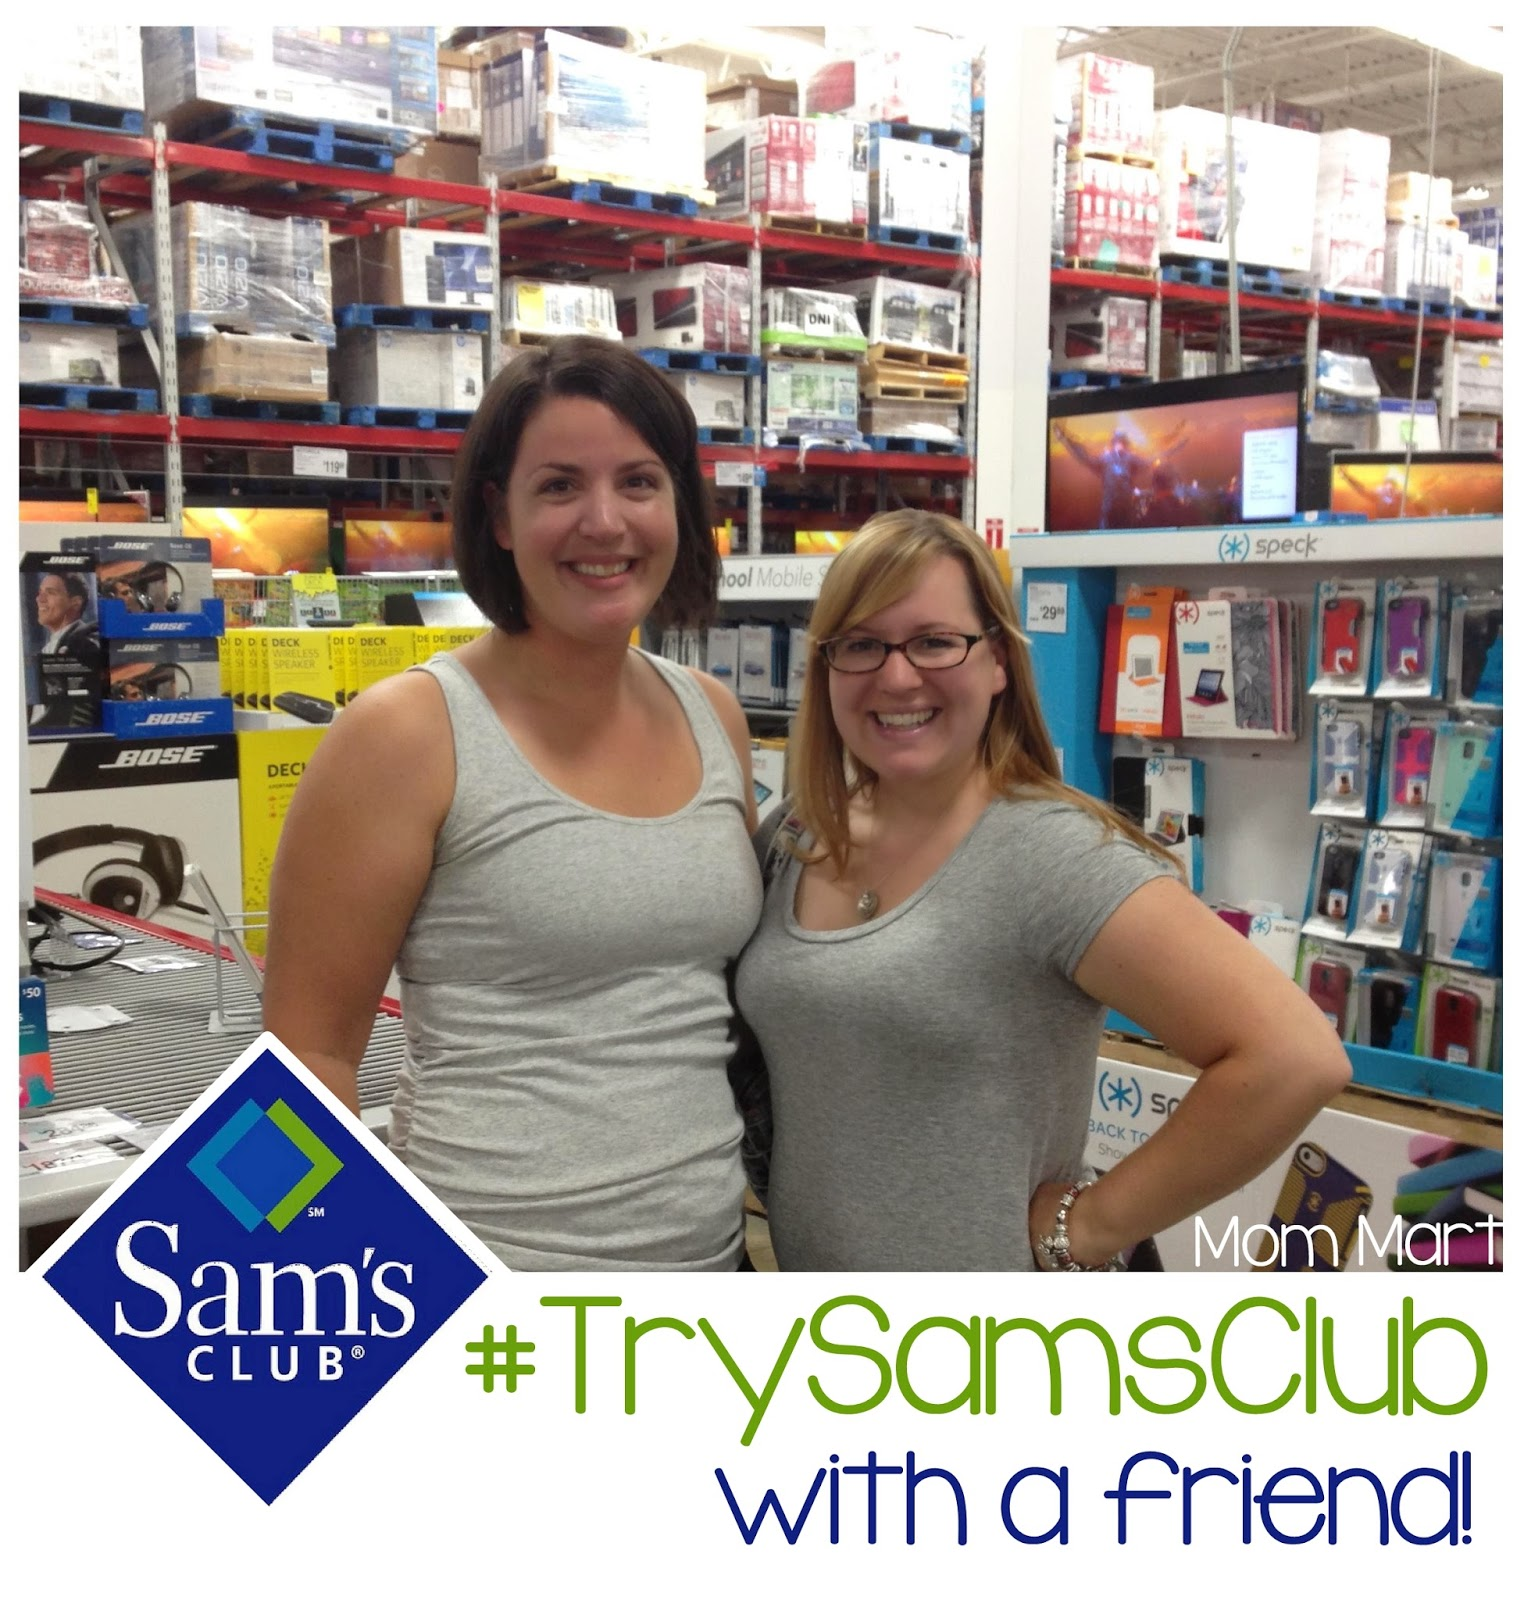 Getting ready to travel with Sam's Club & a friend #TrySamsClub #shop #CollectiveBias #CBias Bring a friend